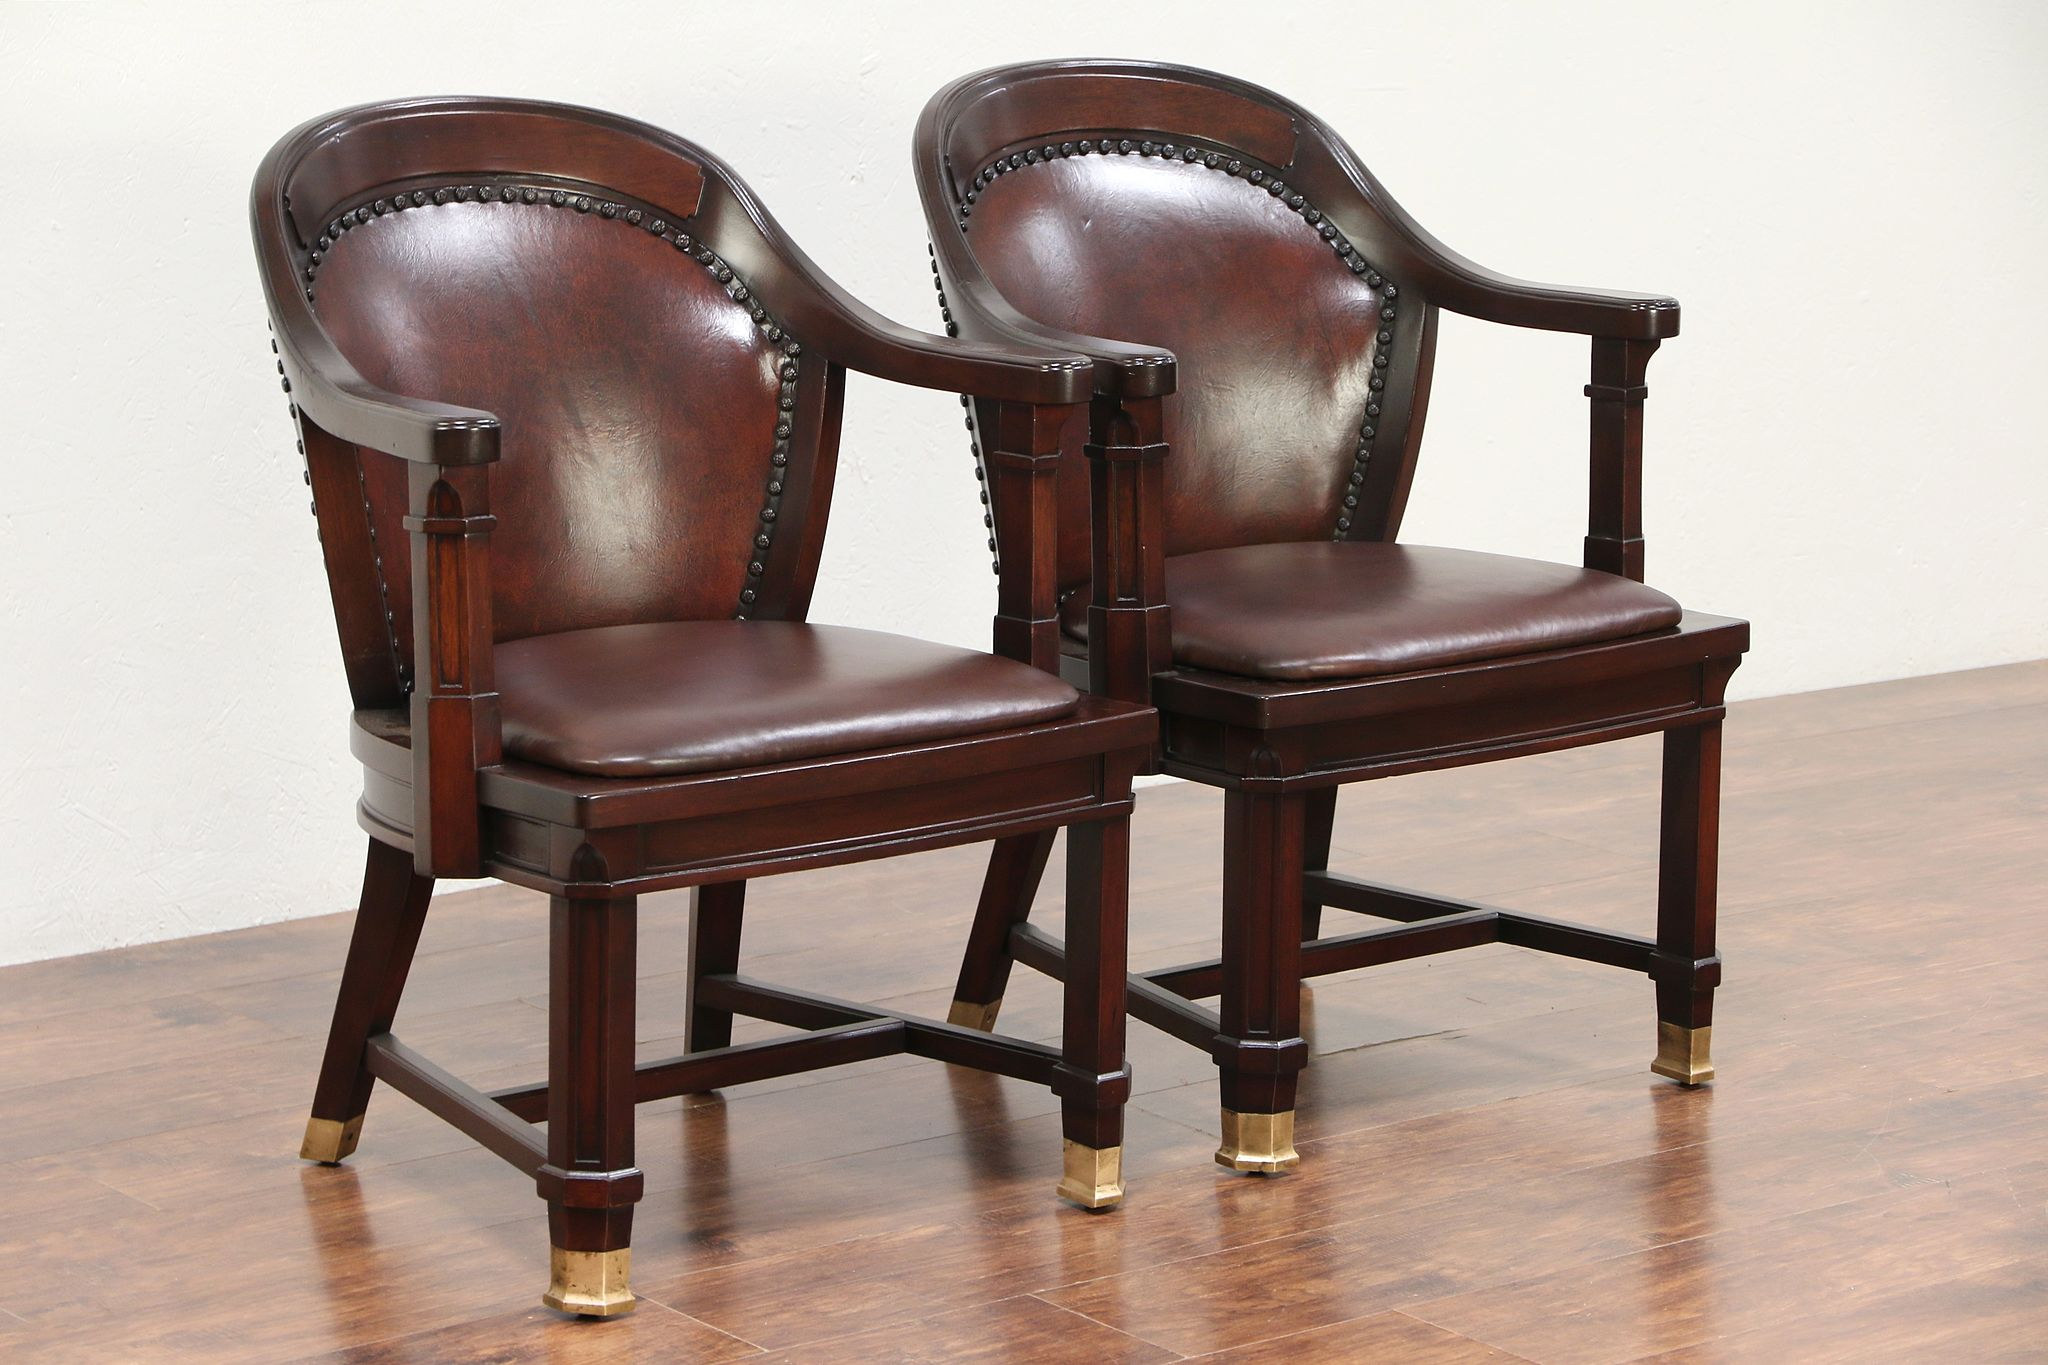 Pair Of Antique Mahogany Banker, Desk Or Office Chairs, Leather #29462 ...